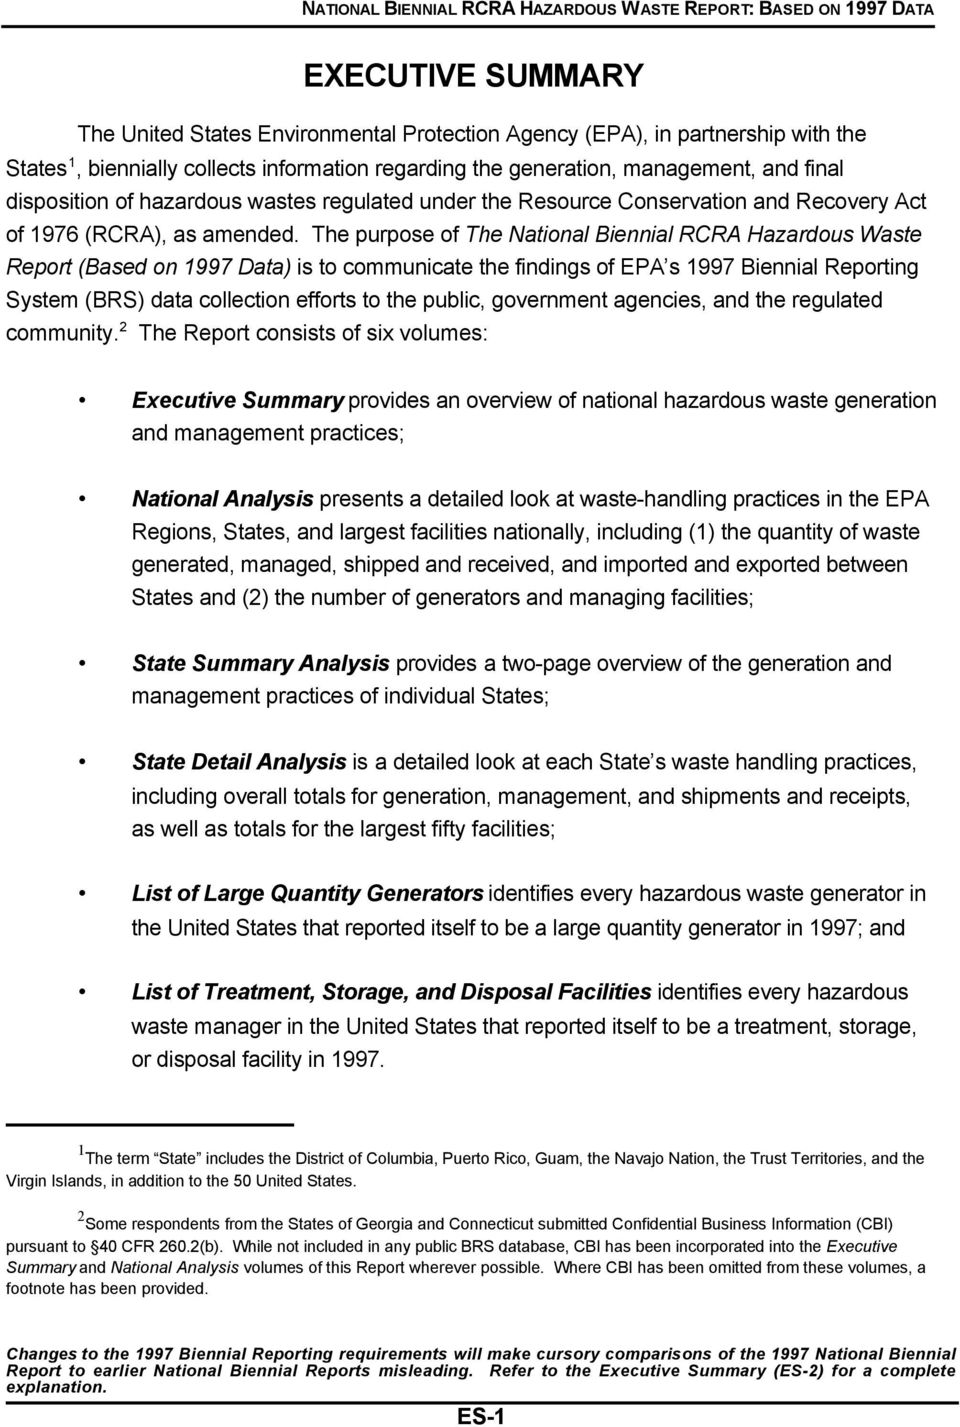 The purpose of The National Biennial RCRA Hazardous Waste Report (Based on 1997 Data) is to communicate the findings of EPA s 1997 Biennial Reporting System (BRS) data collection efforts to the